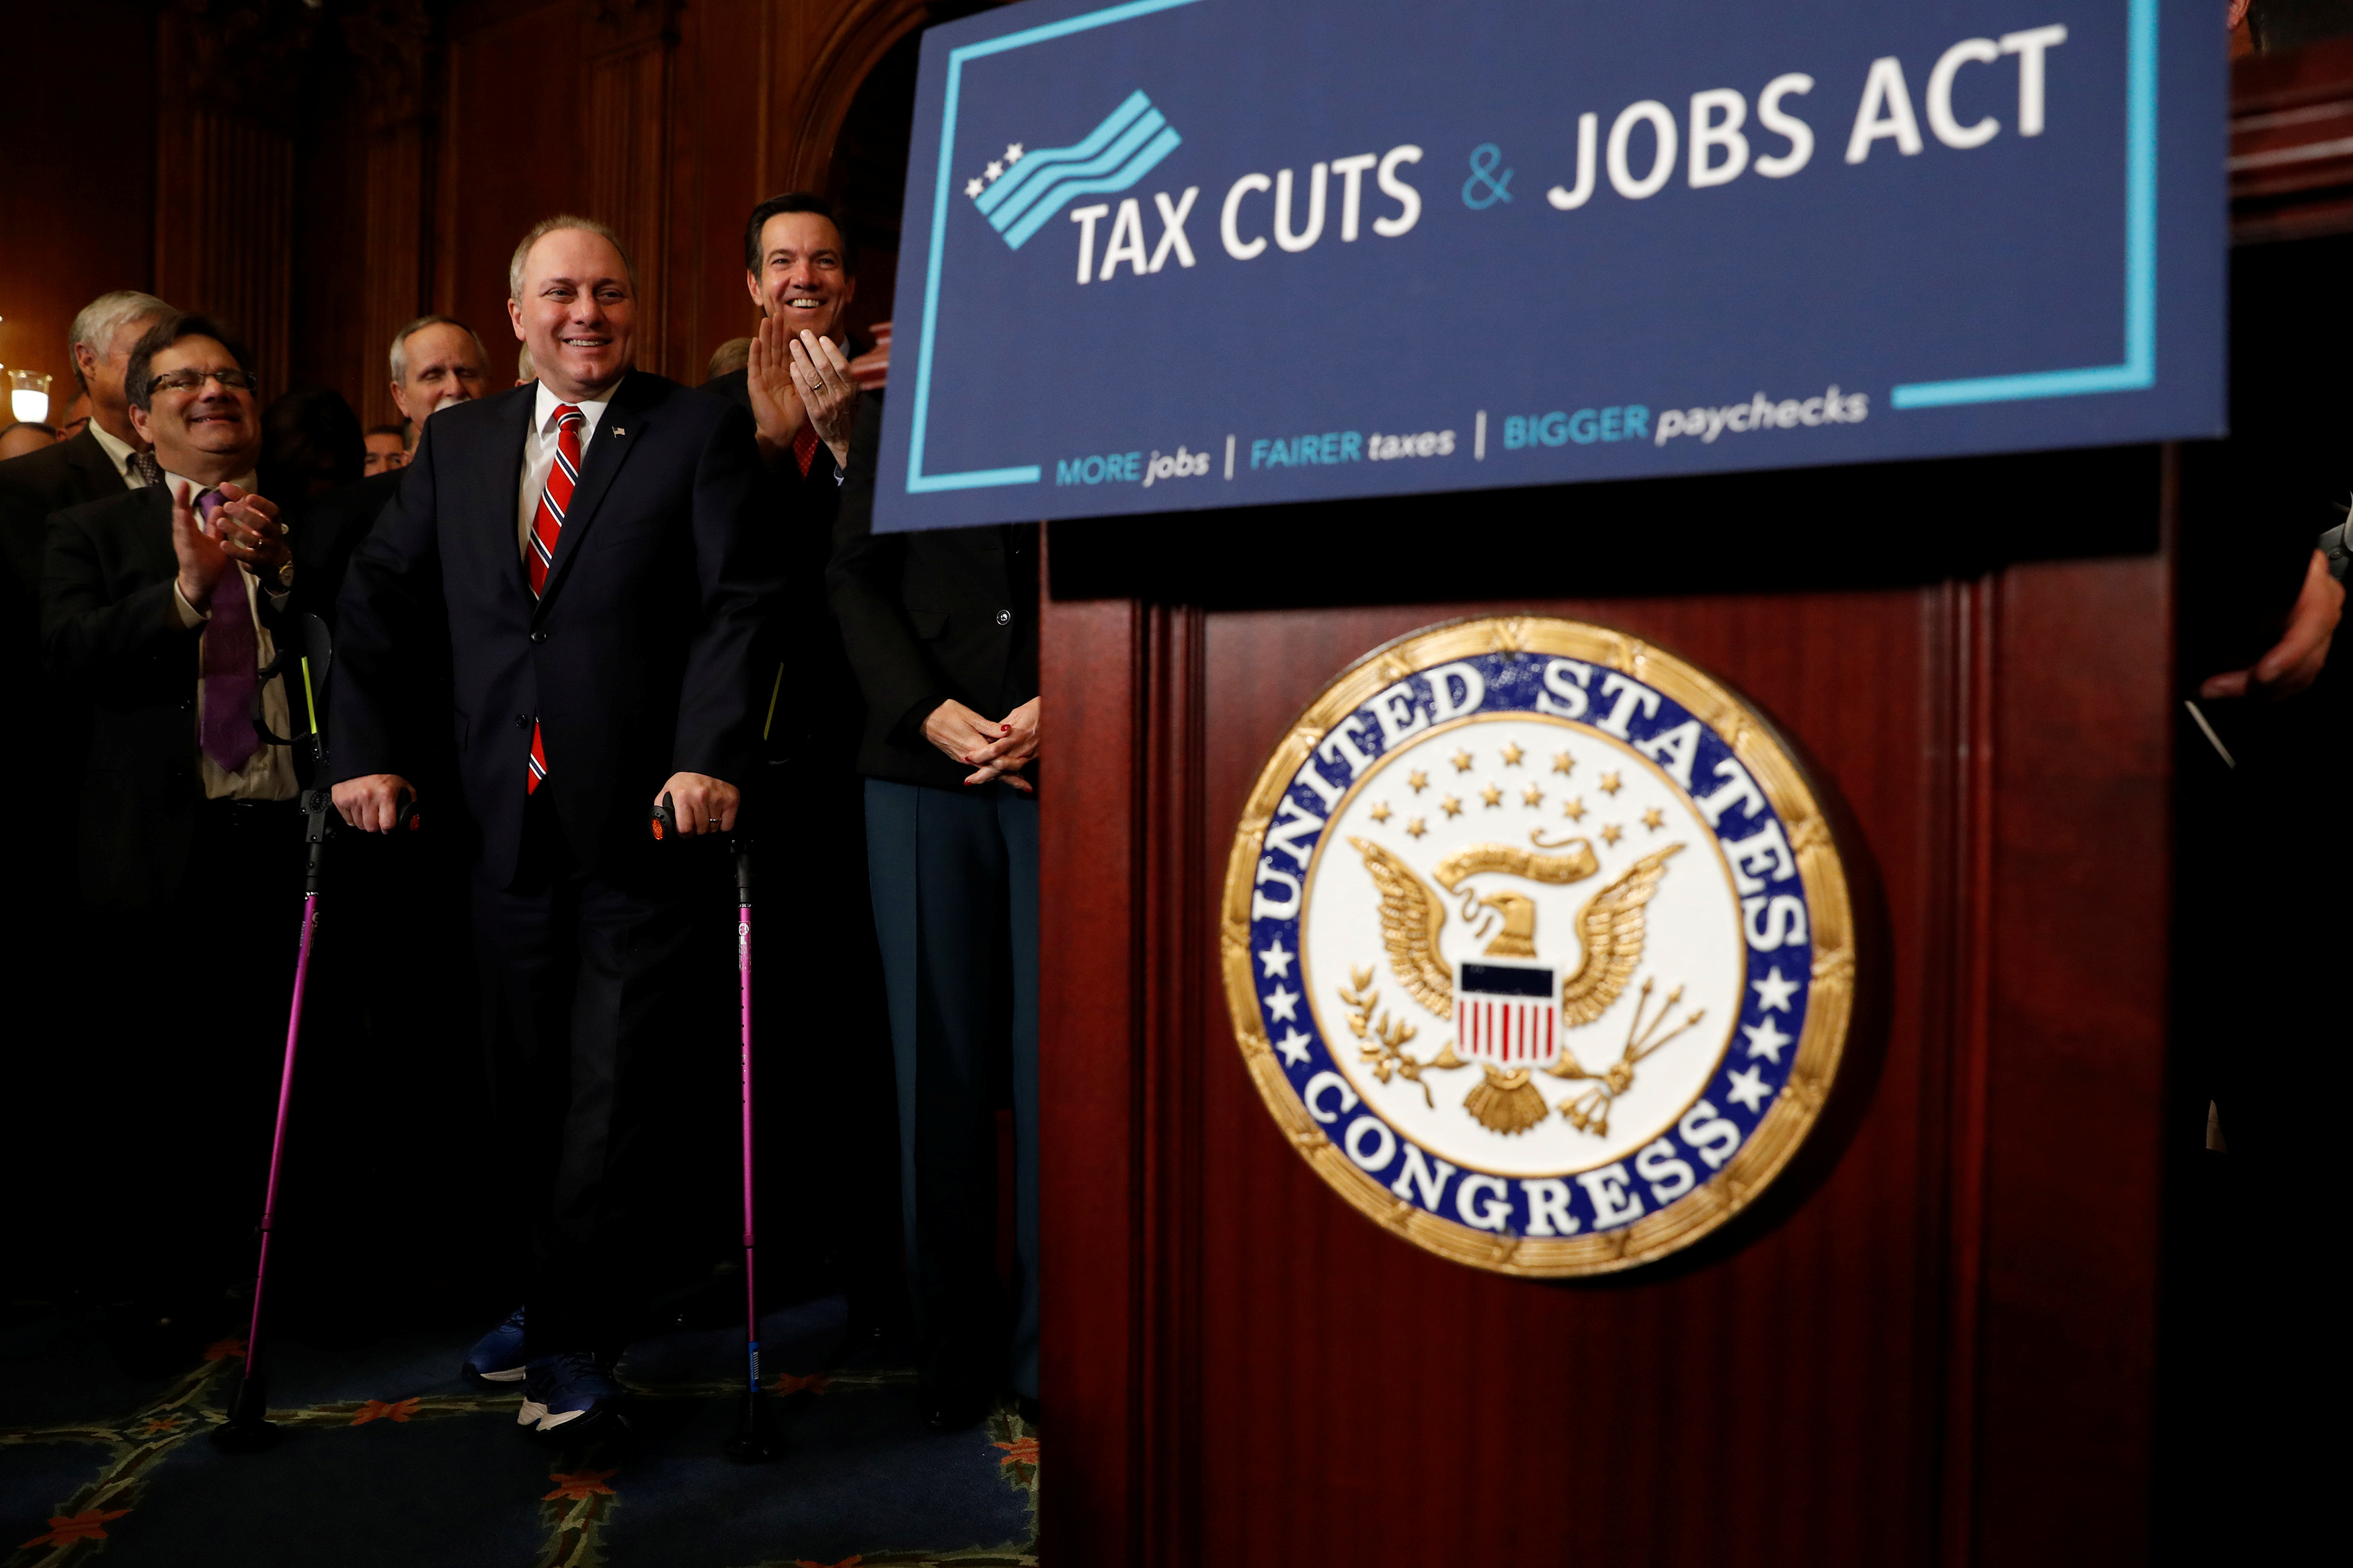 President Trump's 2017 tax cuts reduced the U.S. tax burden to one of the lowest among major world economies…